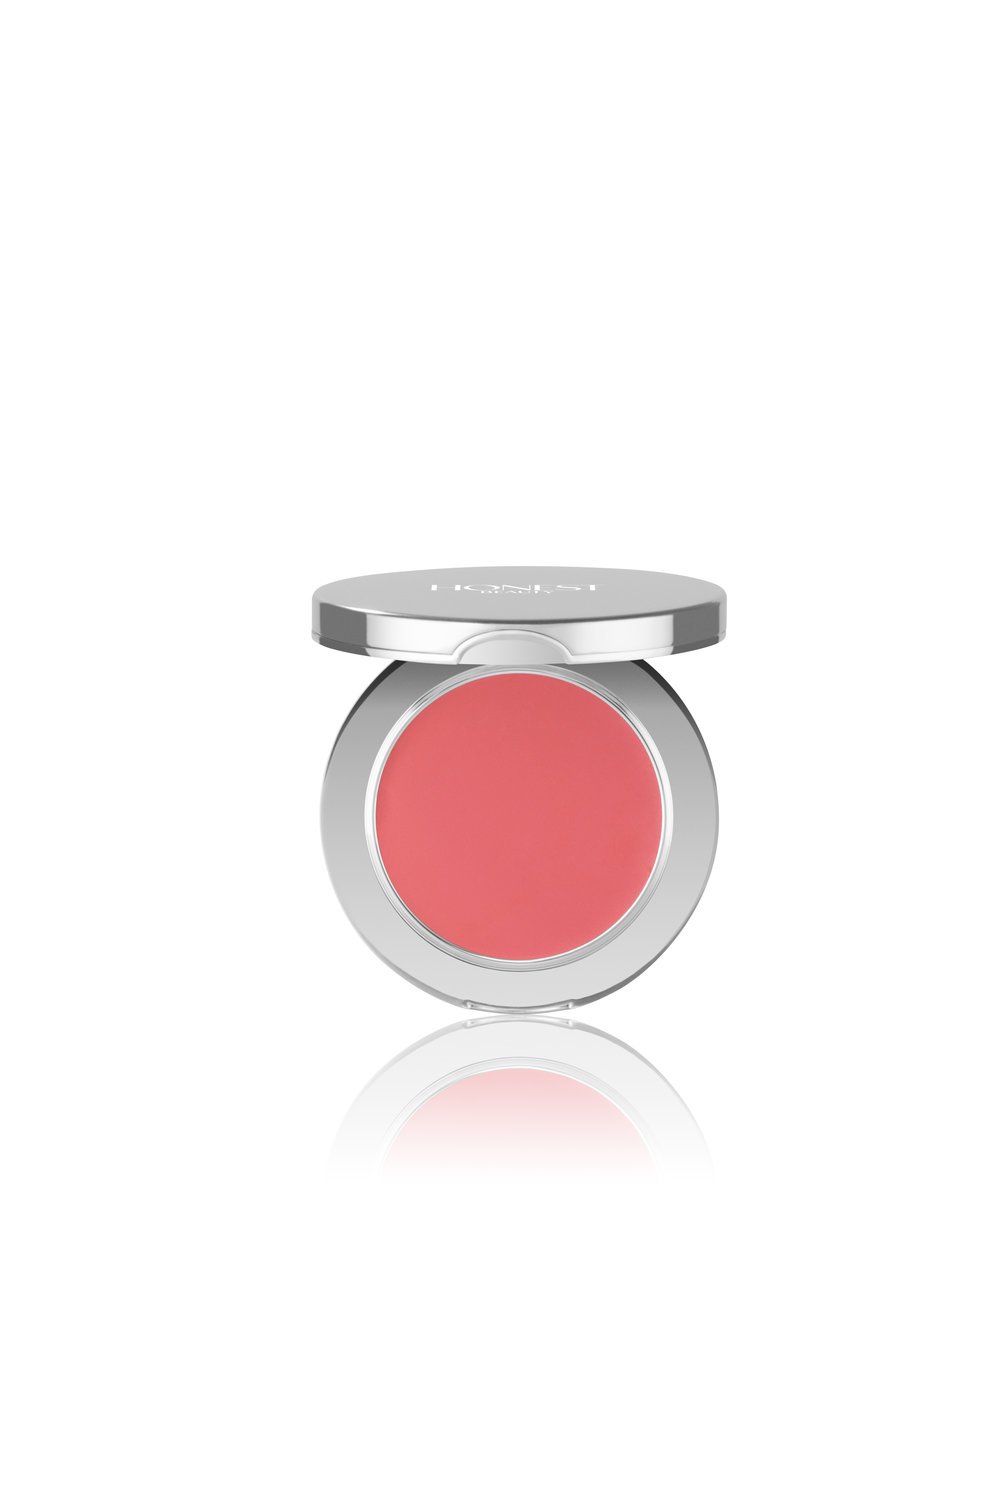 honest-beauty-creme-blush-truly-exciting